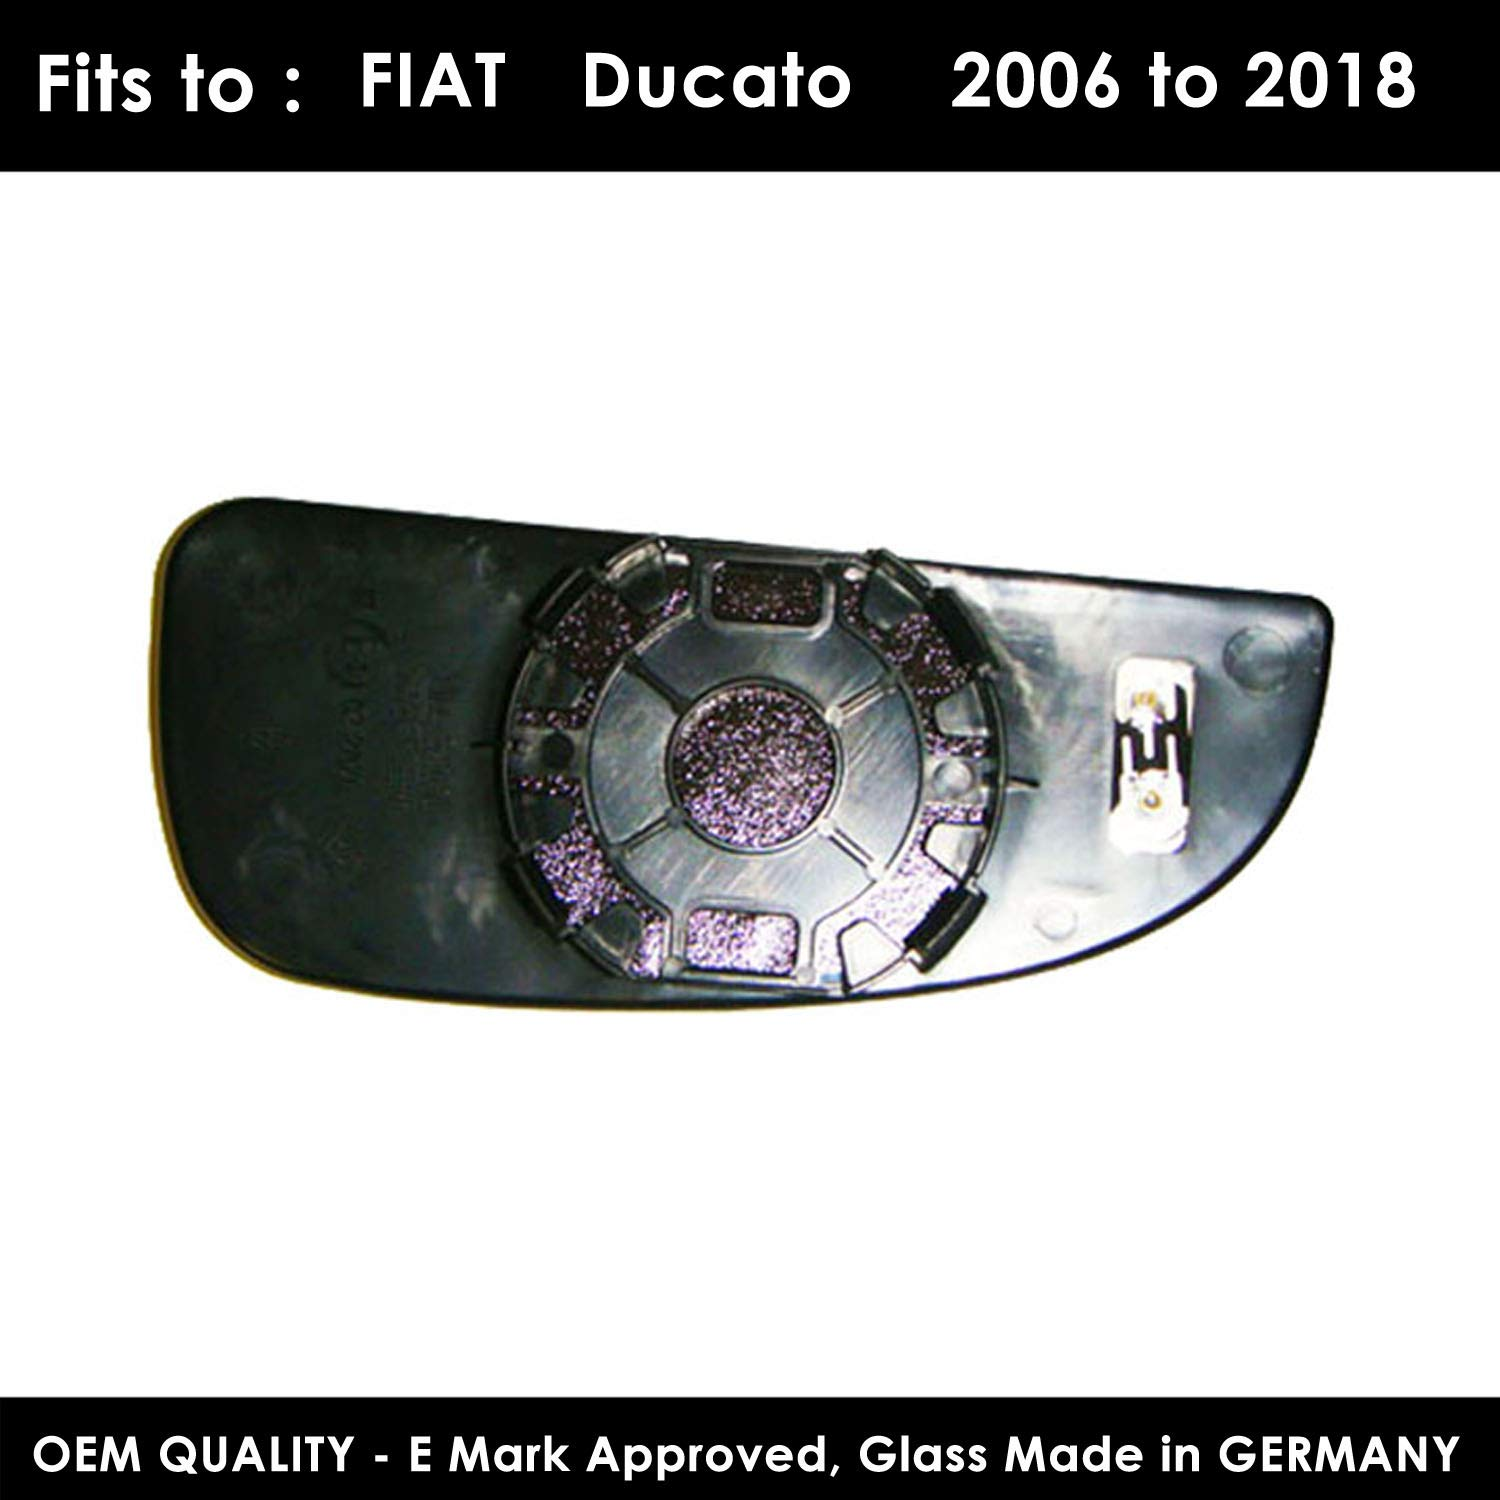 Left Hand Side Door Mirror Glass With base Plate(heated) For FIT-Ducato (Blind Spot Mirror) Year 2006 To 2018